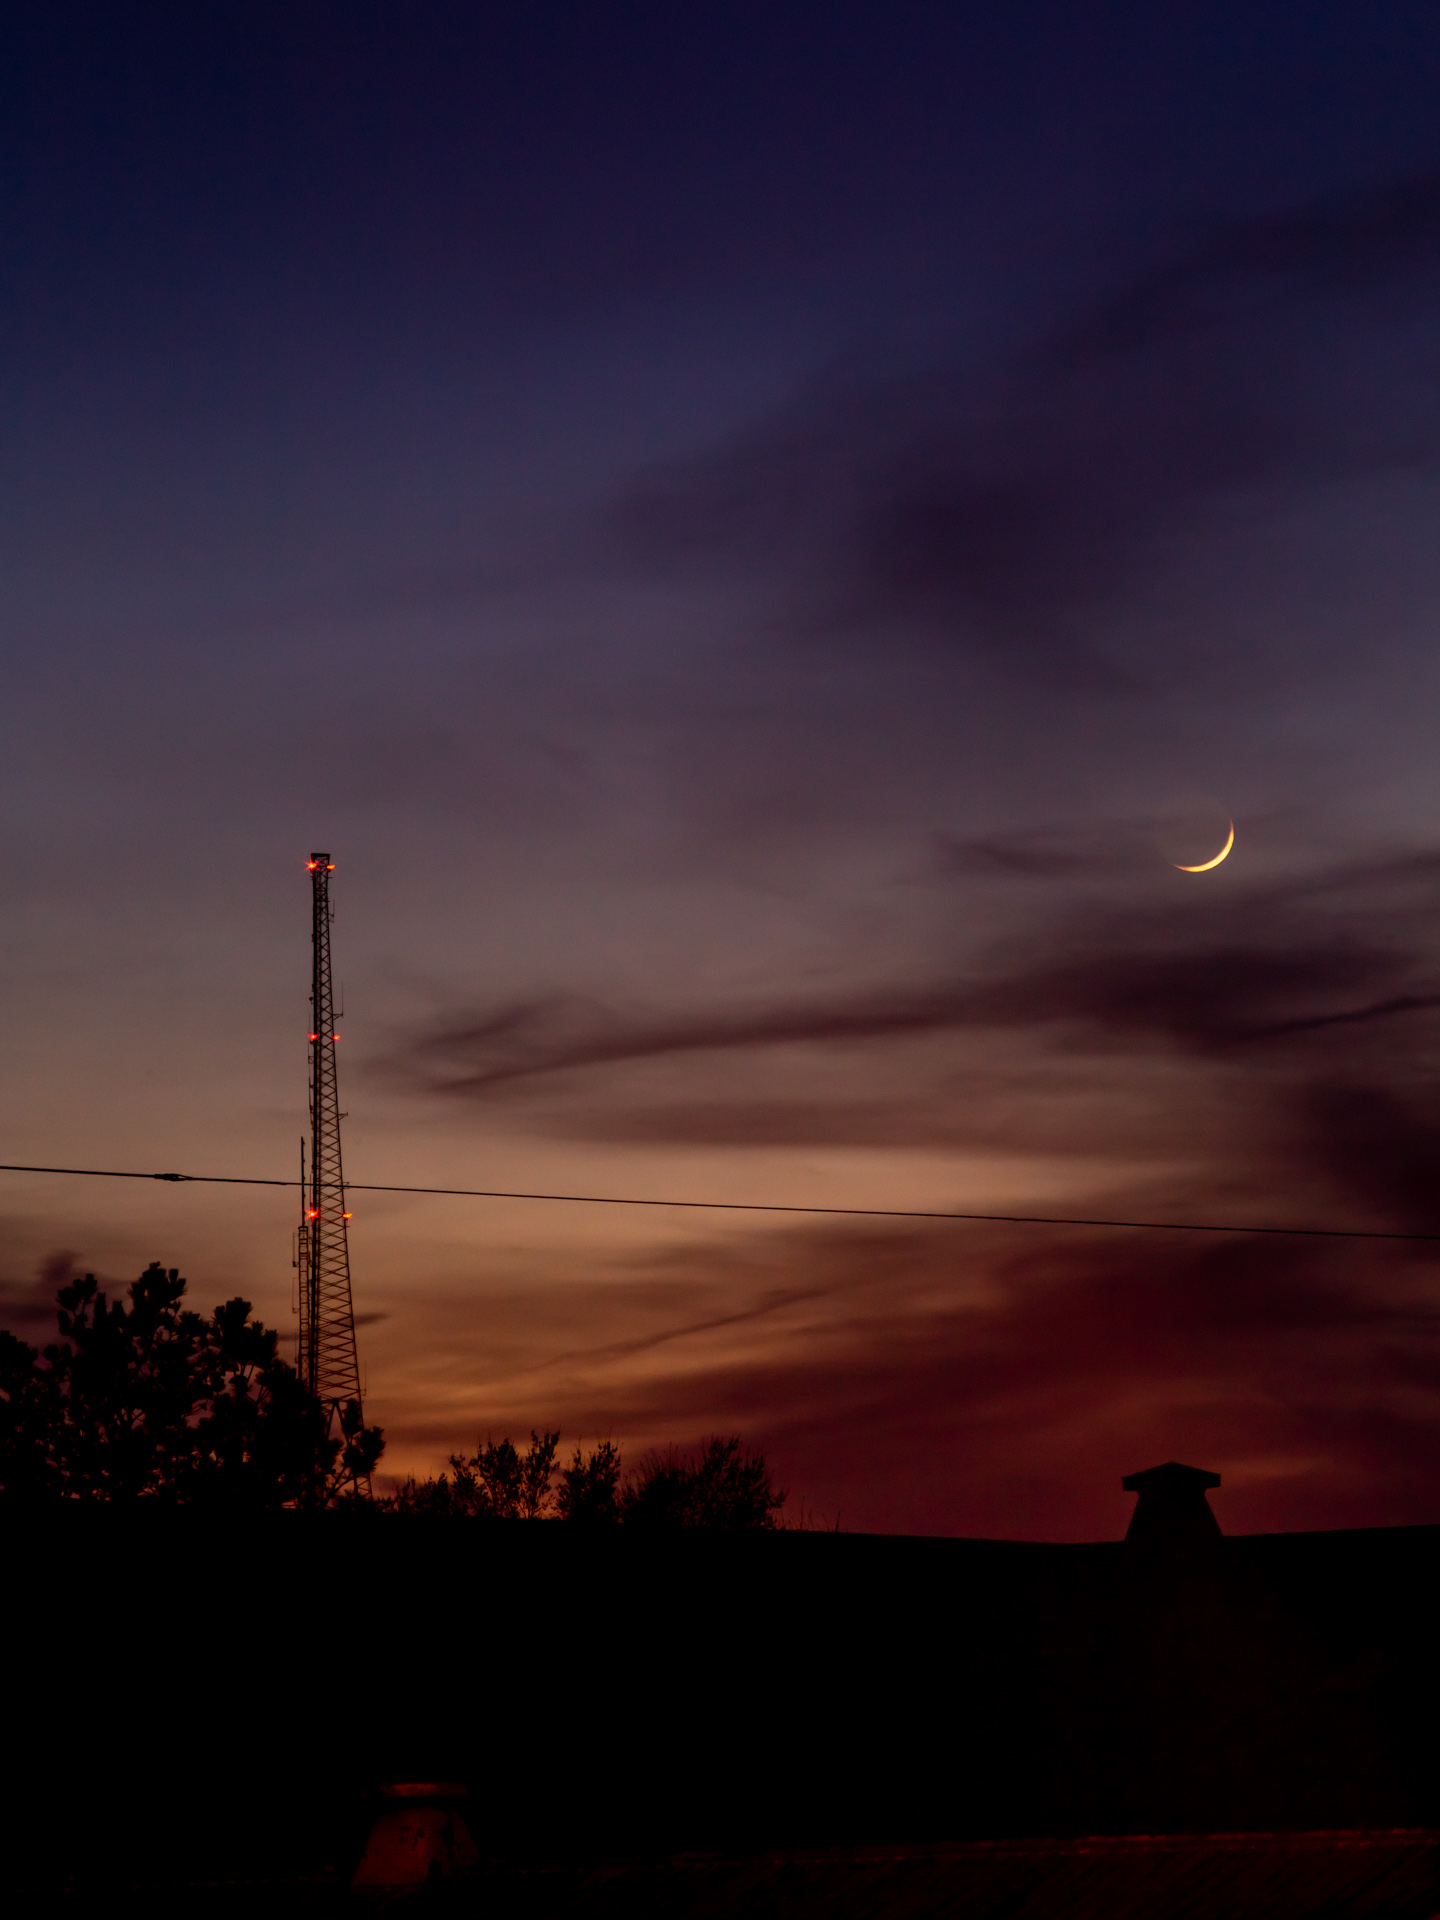 Waxing Crescent Moon after Sunset | 20190406 2014 W:38.96x77.00@77m